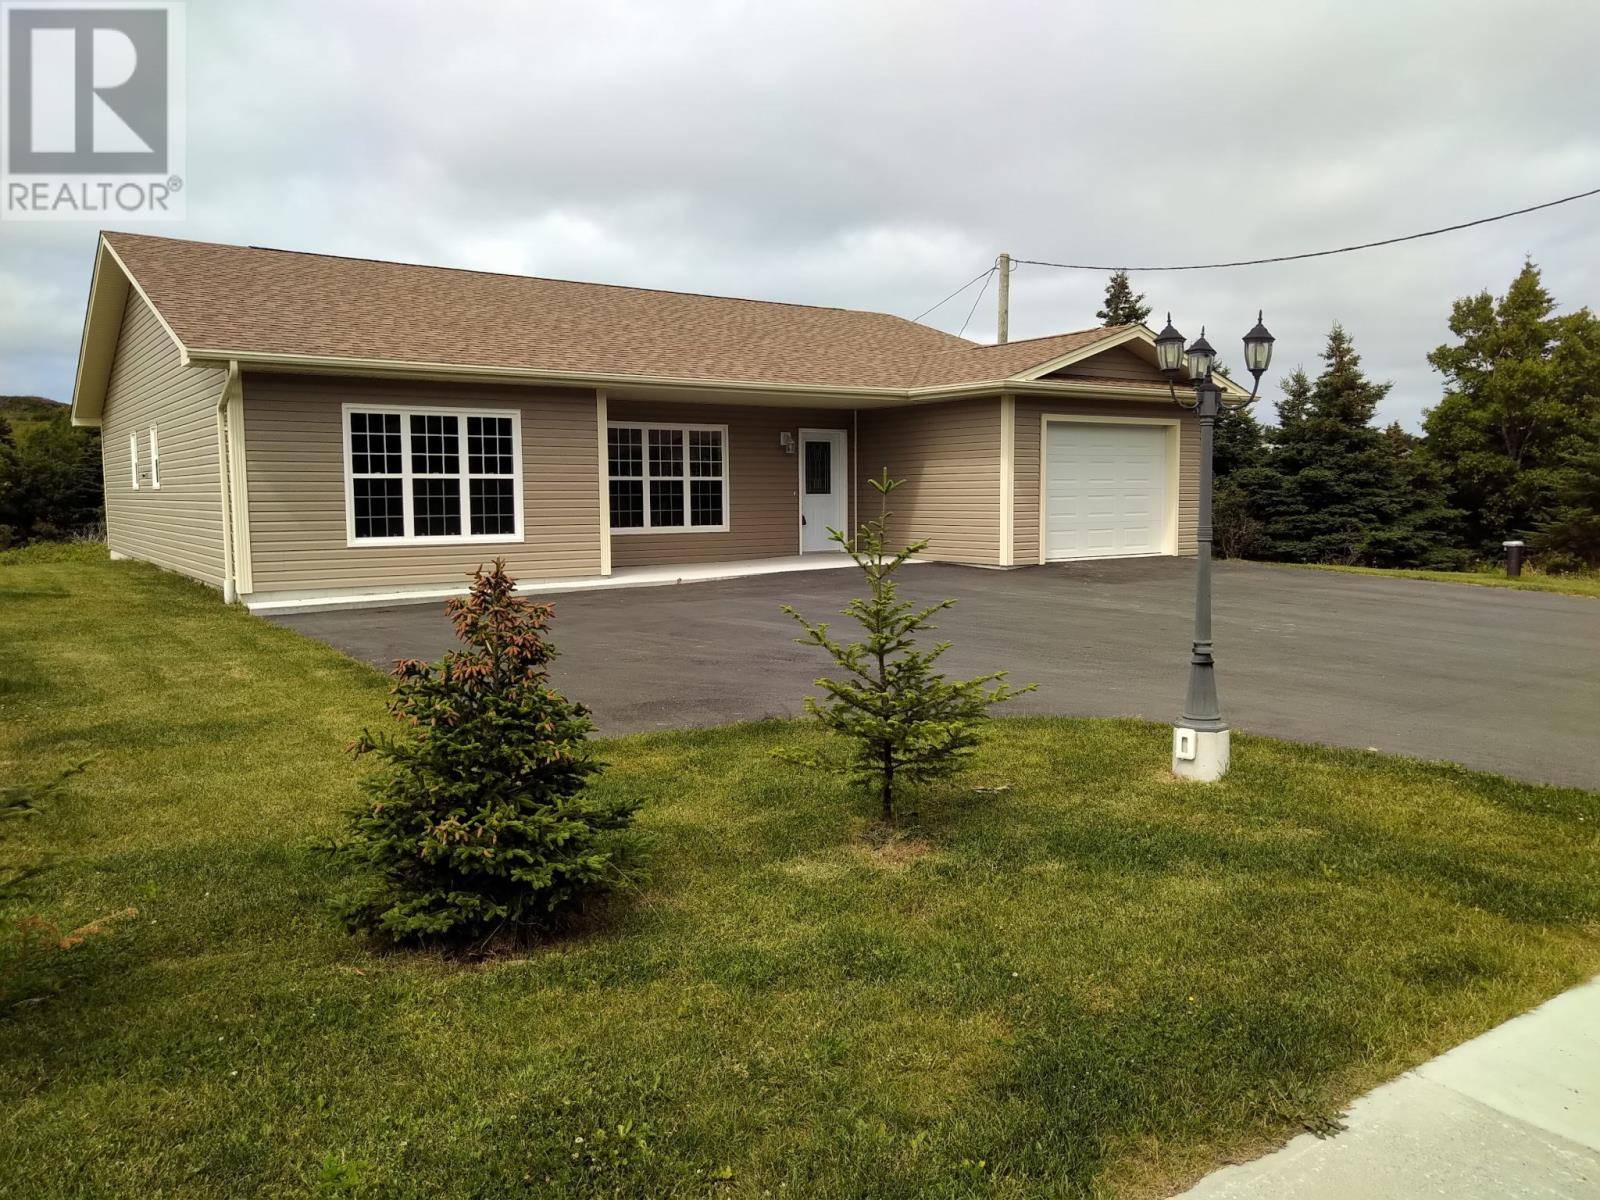 House for sale at 51 Mahons Ln Torbay Newfoundland - MLS: 1200870